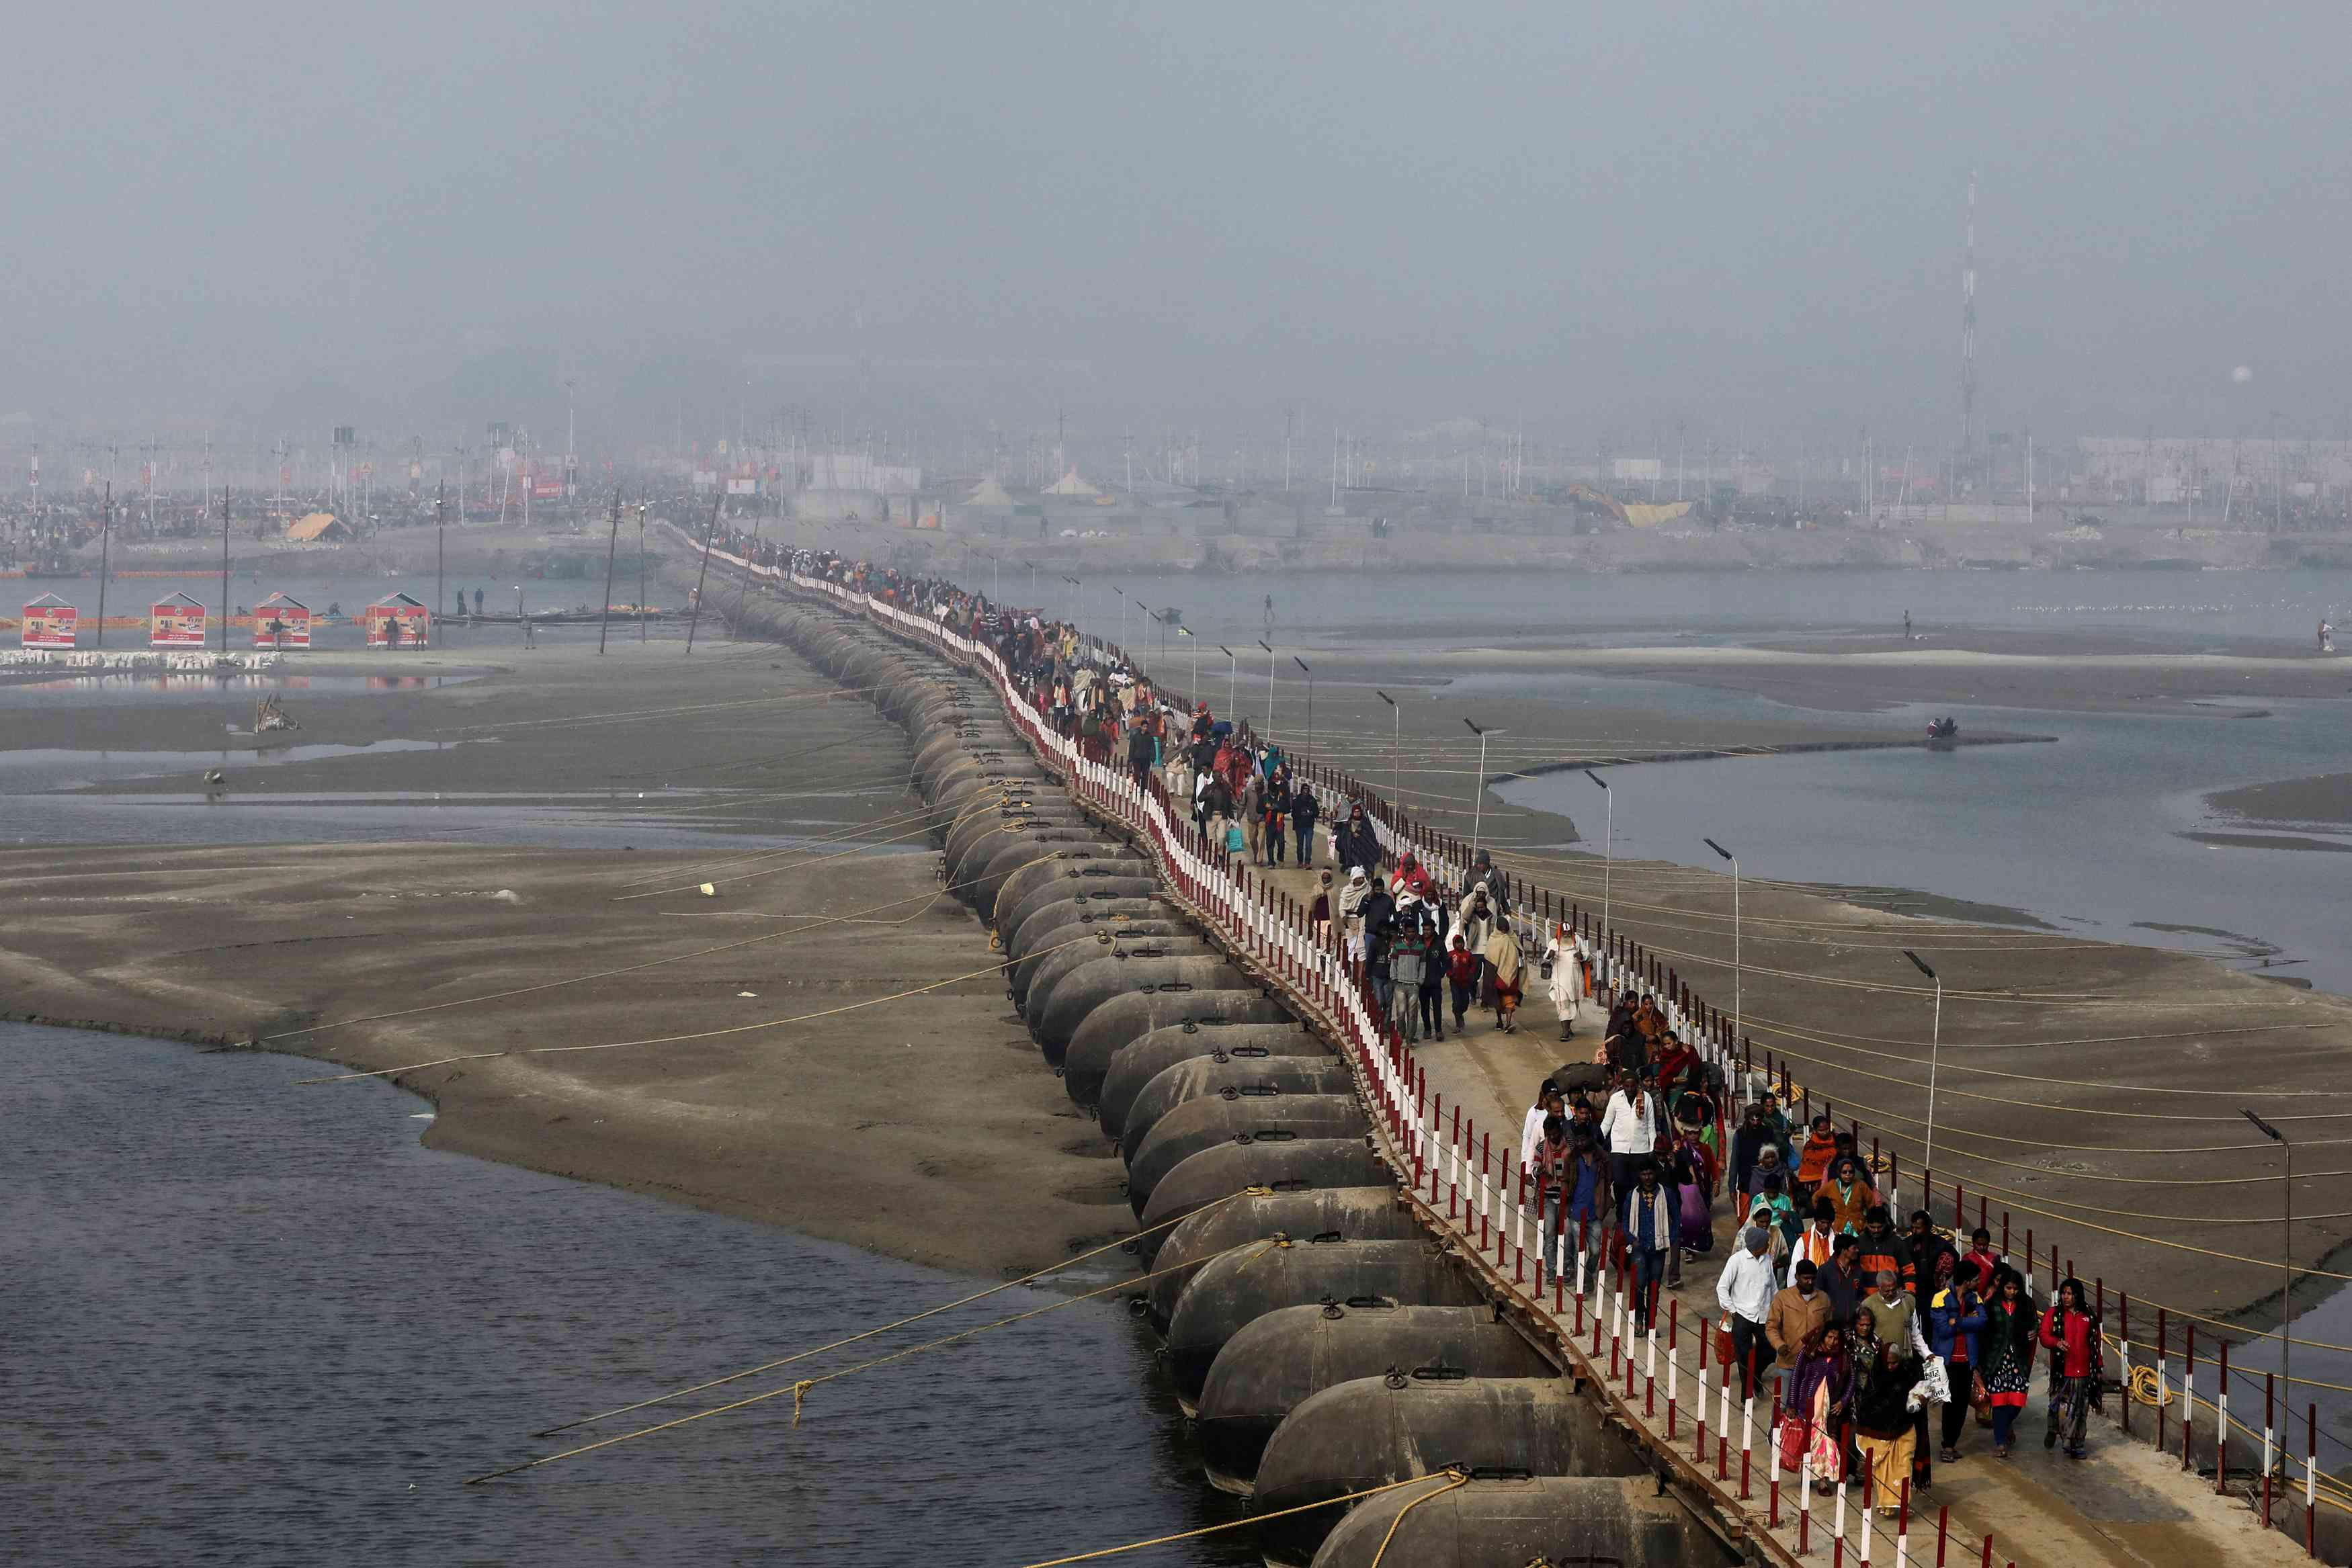 The makeshift bridge leading to the site of the Kumbh mela in Prayagraj. Credit: Anushree Fadnavis/Reuters